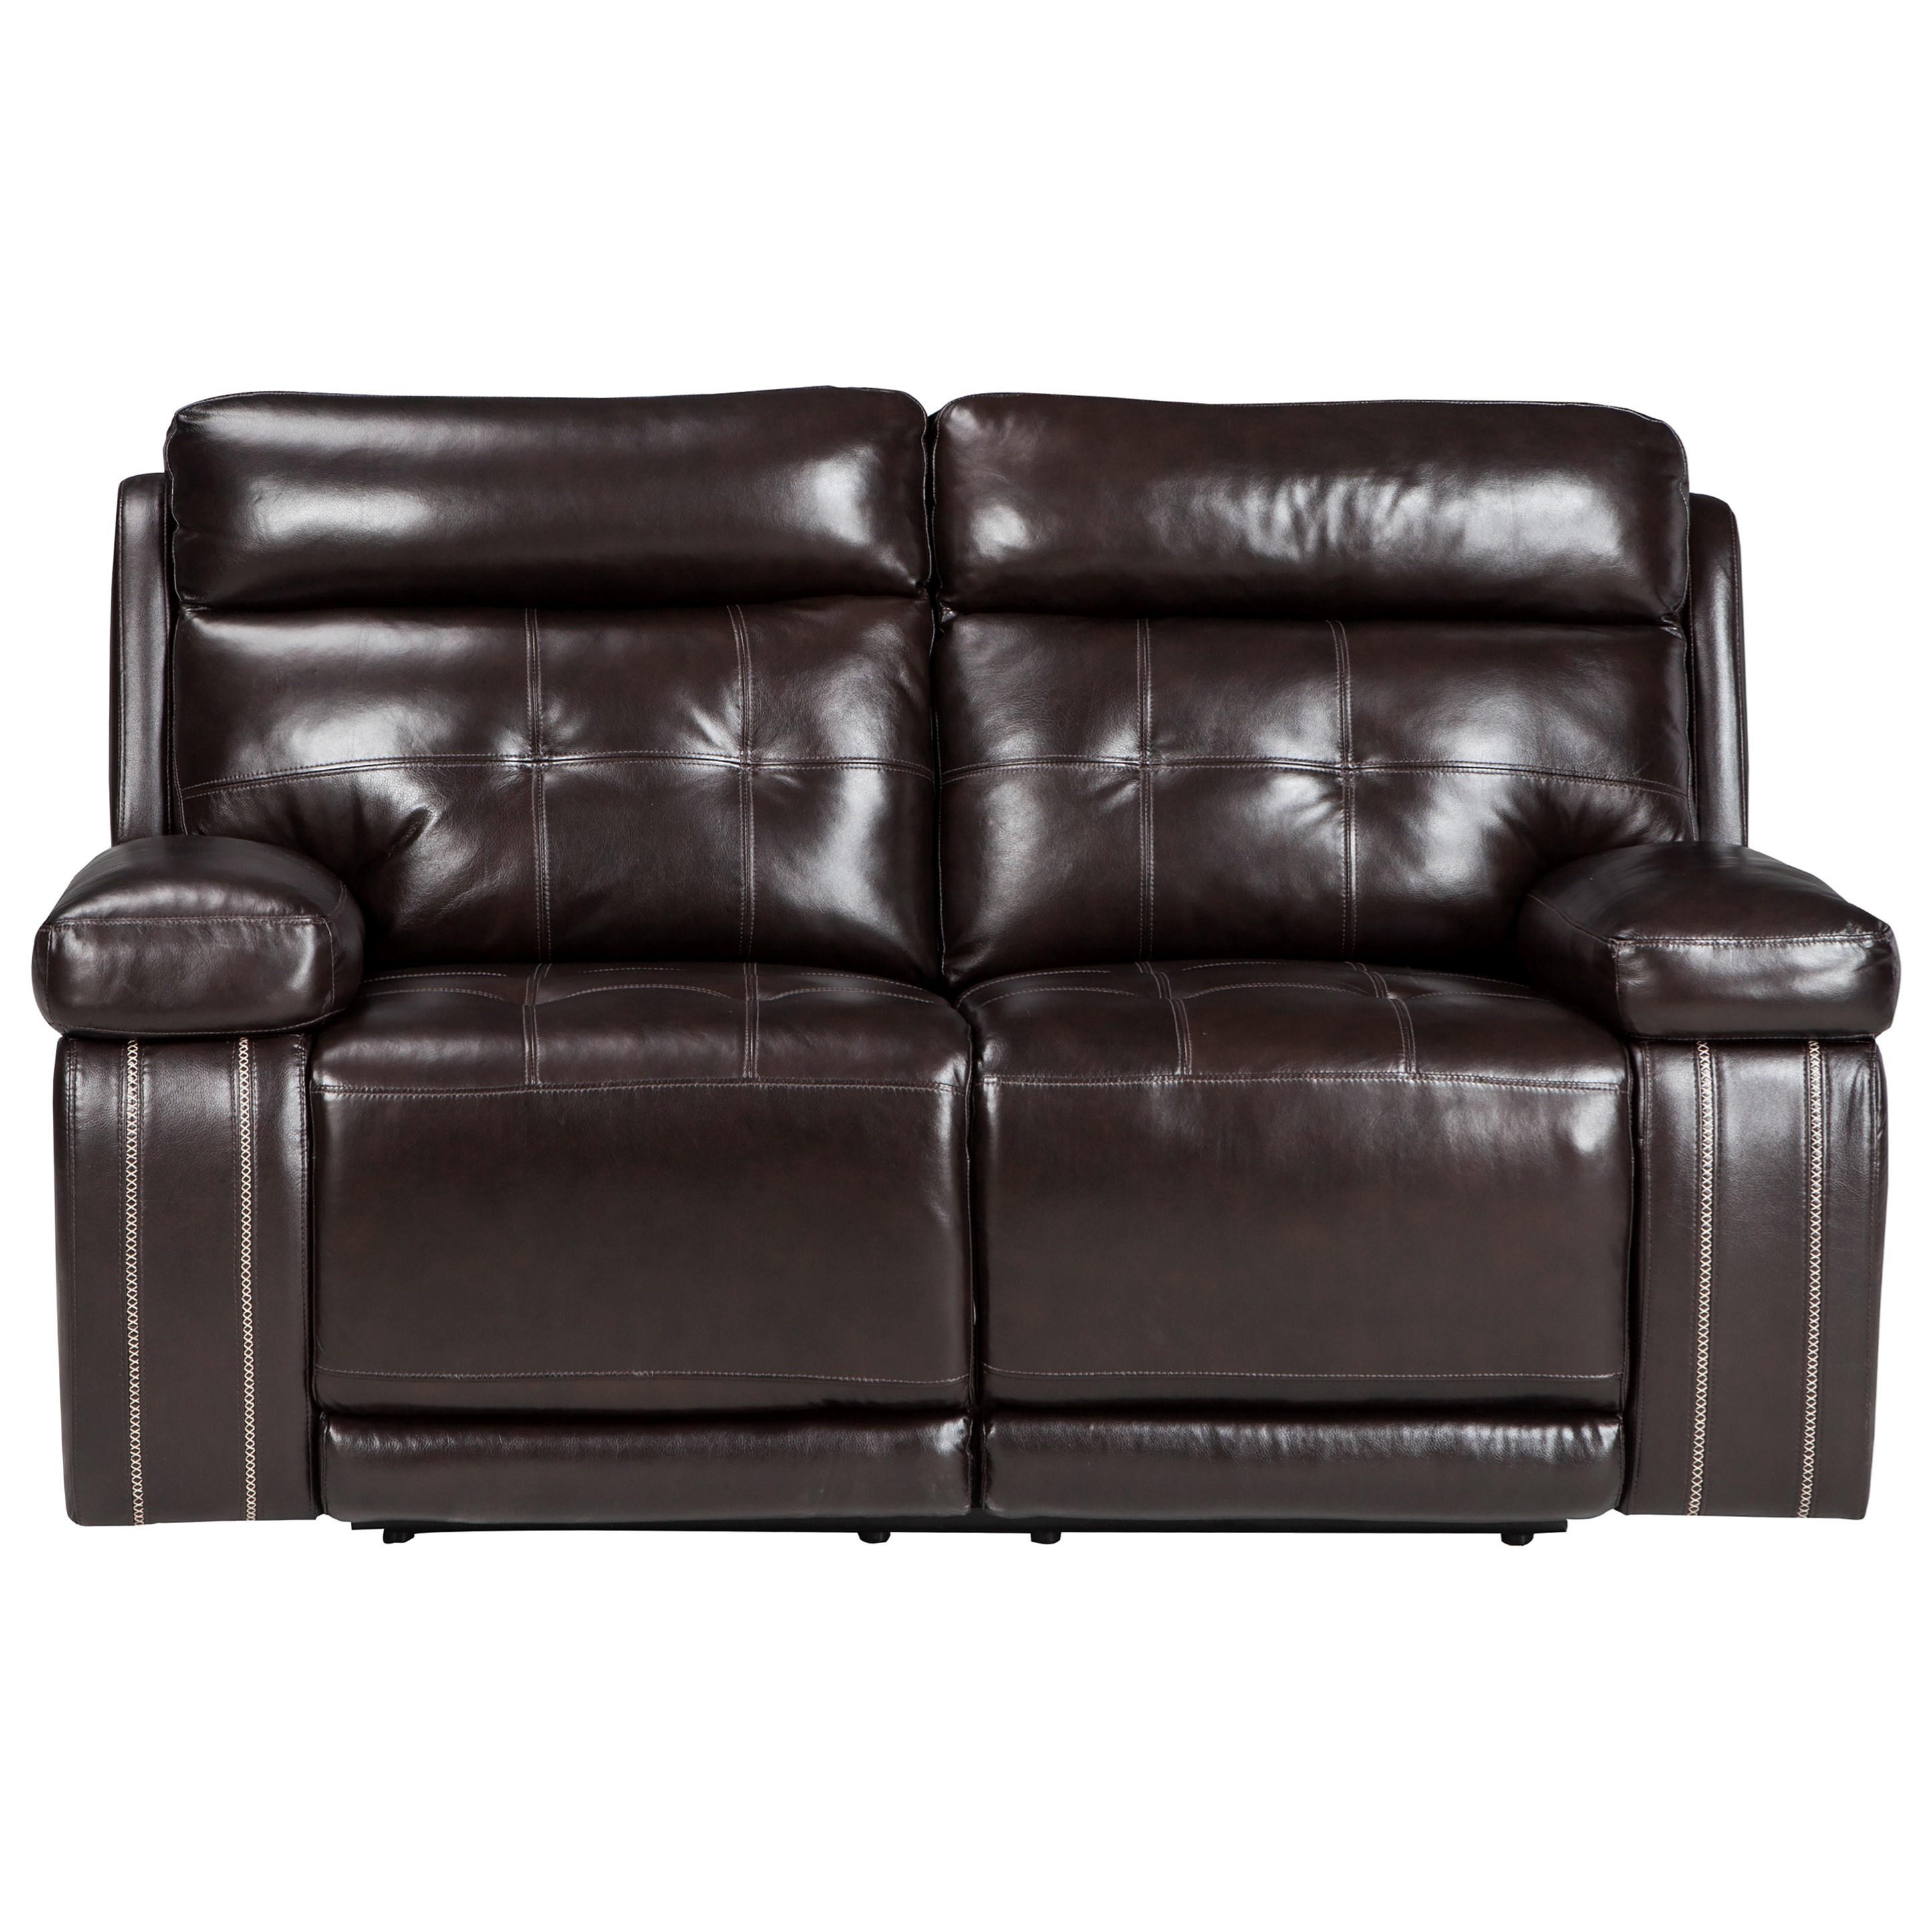 Signature Design by Ashley Graford Power Reclining Loveseat w/ Adj. Headrest - Item Number: 6470214